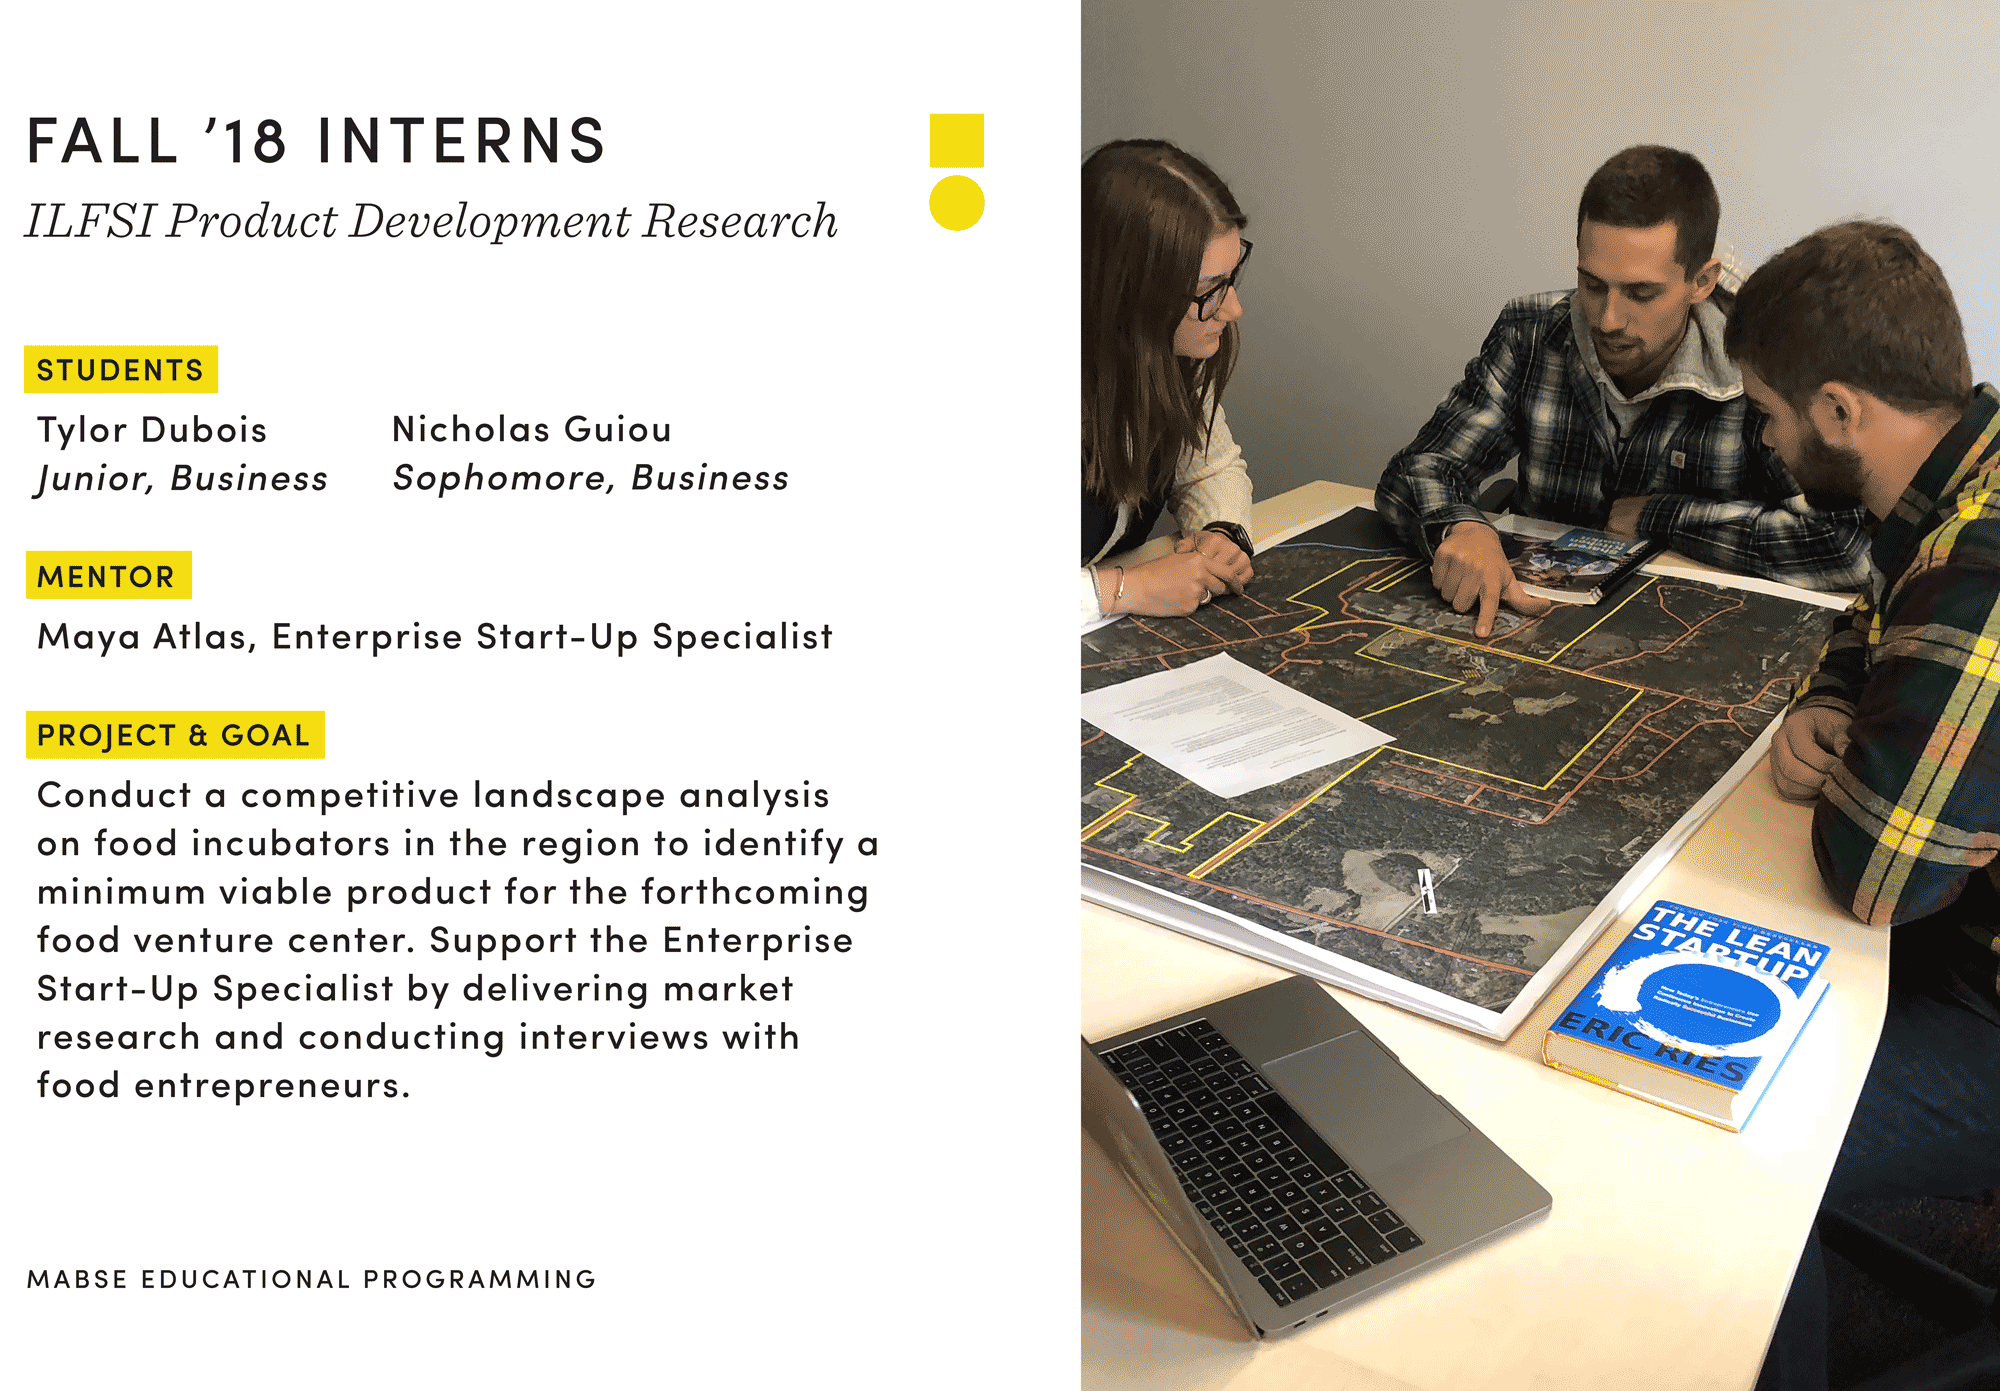 students work together and graphic about internship